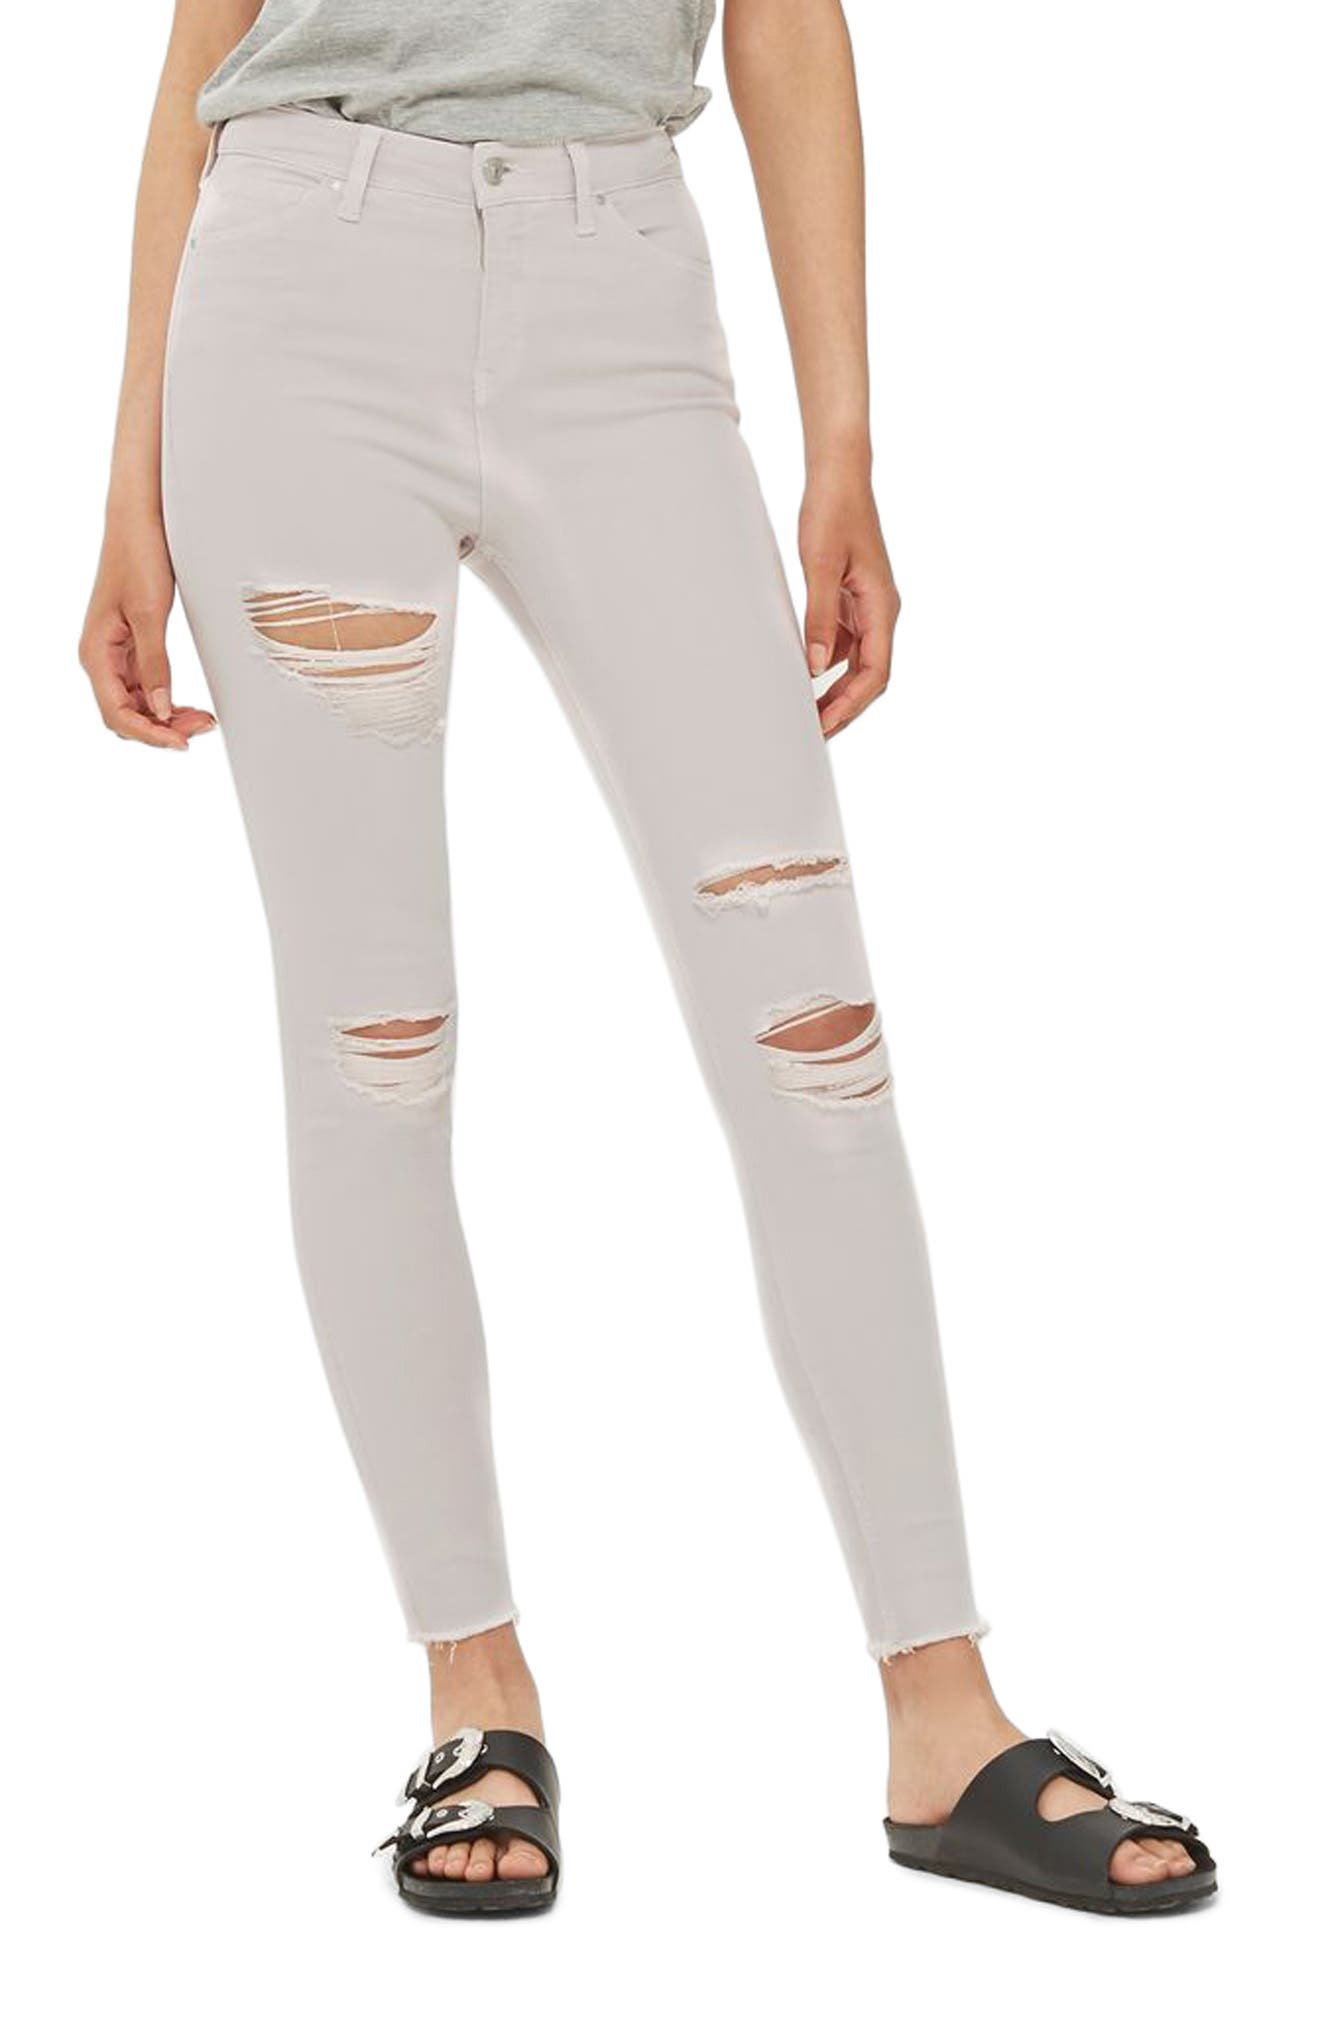 Topshop Jamie Ripped High Rise Skinny Jeans